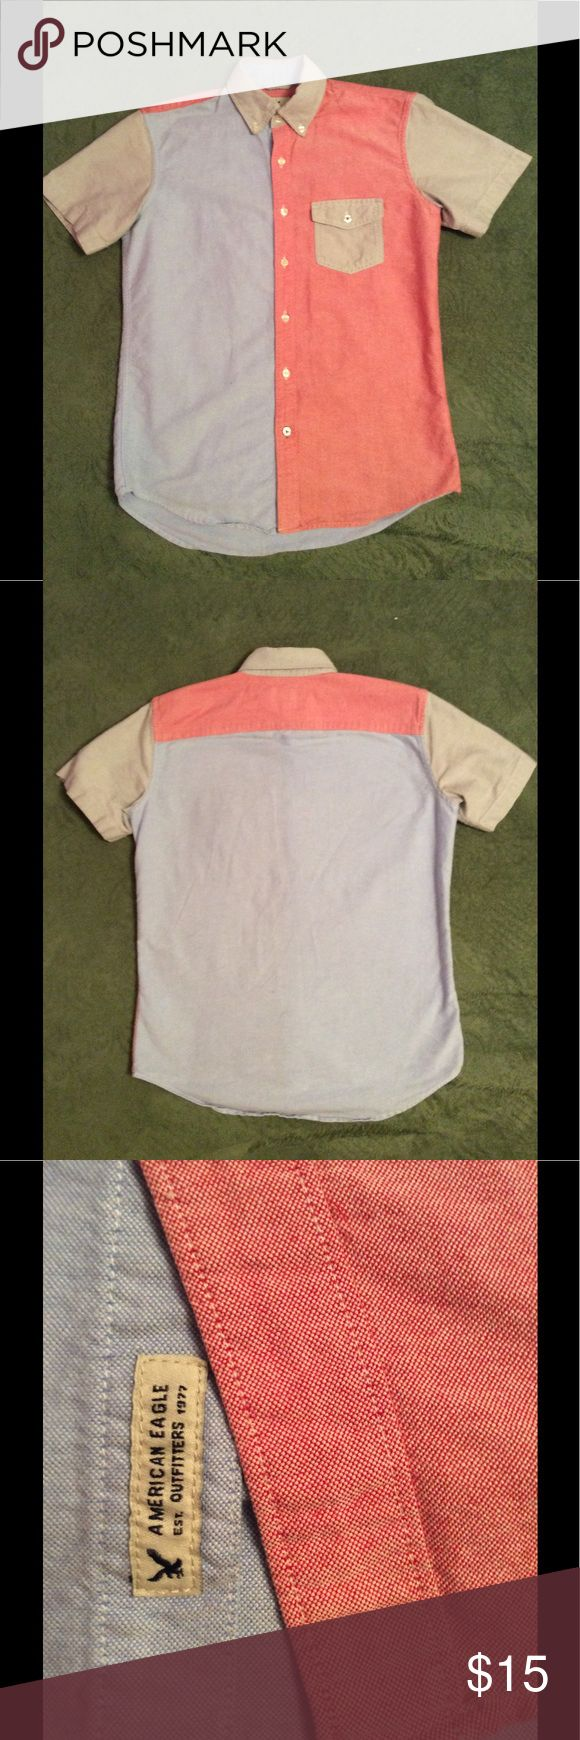 American Eagle shirt XS American Eagle red, gray, and blue color block button up shirt size XS. Add to a bundle for a great deal. American Eagle Outfitters Shirts Casual Button Down Shirts